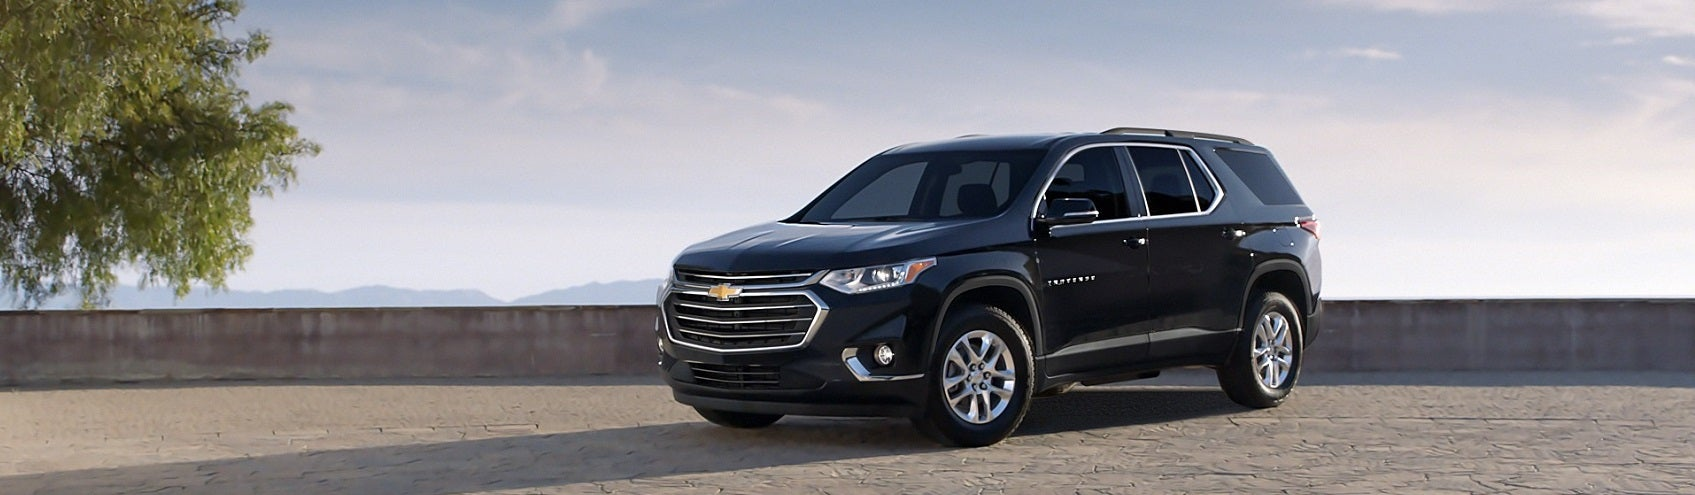 Chevy Of Columbus >> 2019 Chevy Traverse Columbus Oh Mark Wahlberg Chevrolet